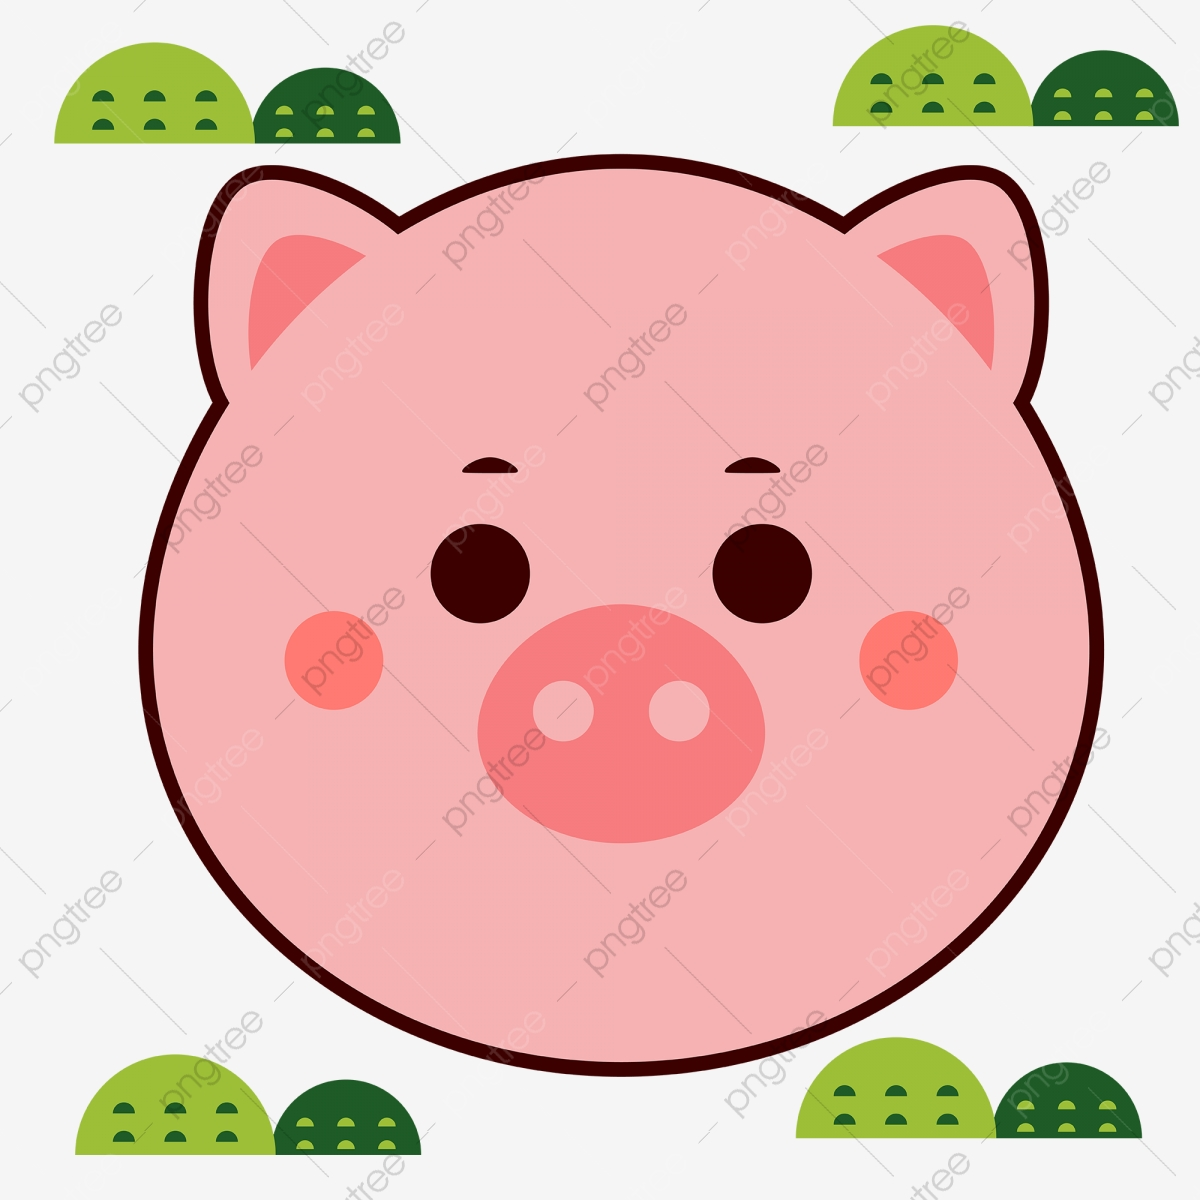 Pig Cartoon Avatar Material Original Vector Ai Png And Vector With Transparent Background For Free Download